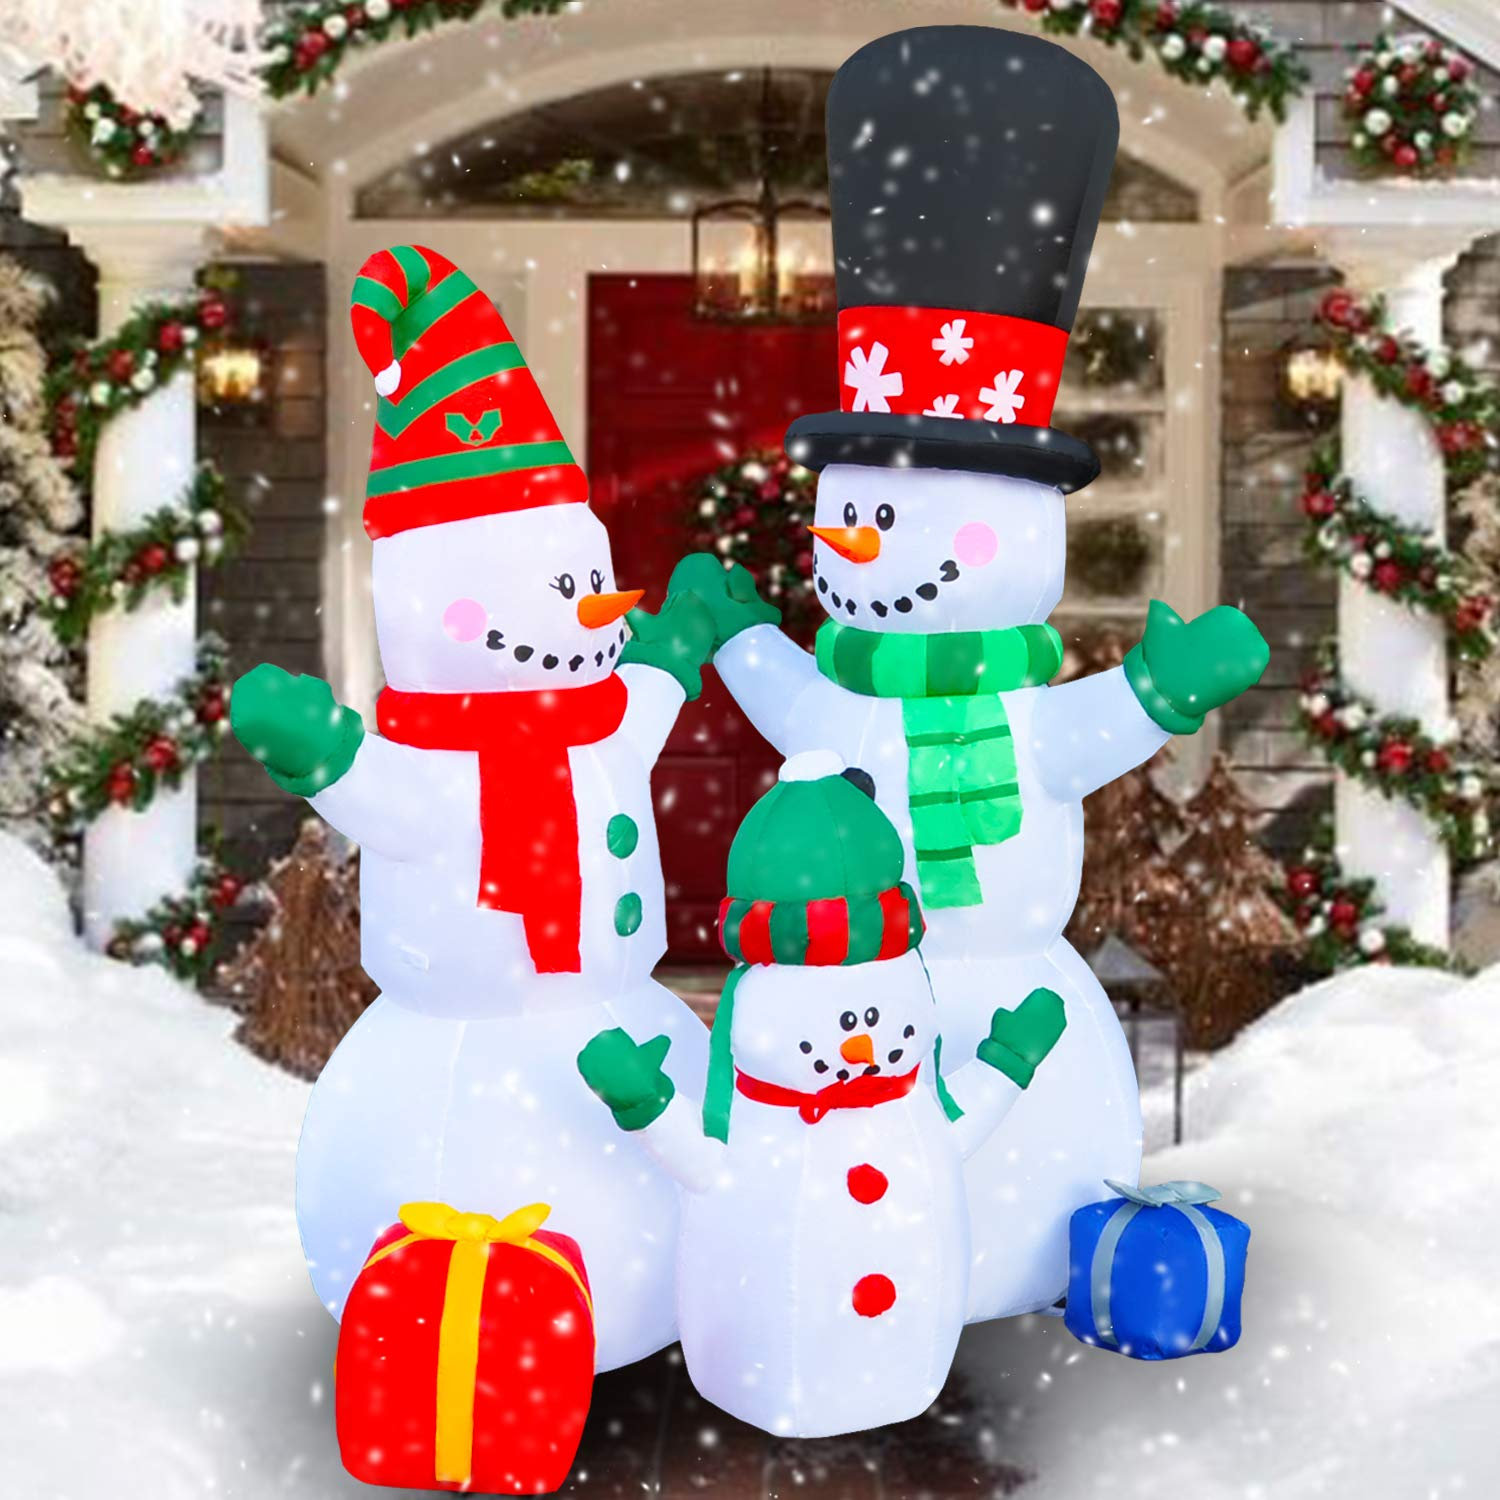 SEASONBLOW 6 Ft Inflatable Christmas Snowman Family Scence Decoration for Yard Lawn Garden Home Party Indoor Outdoor